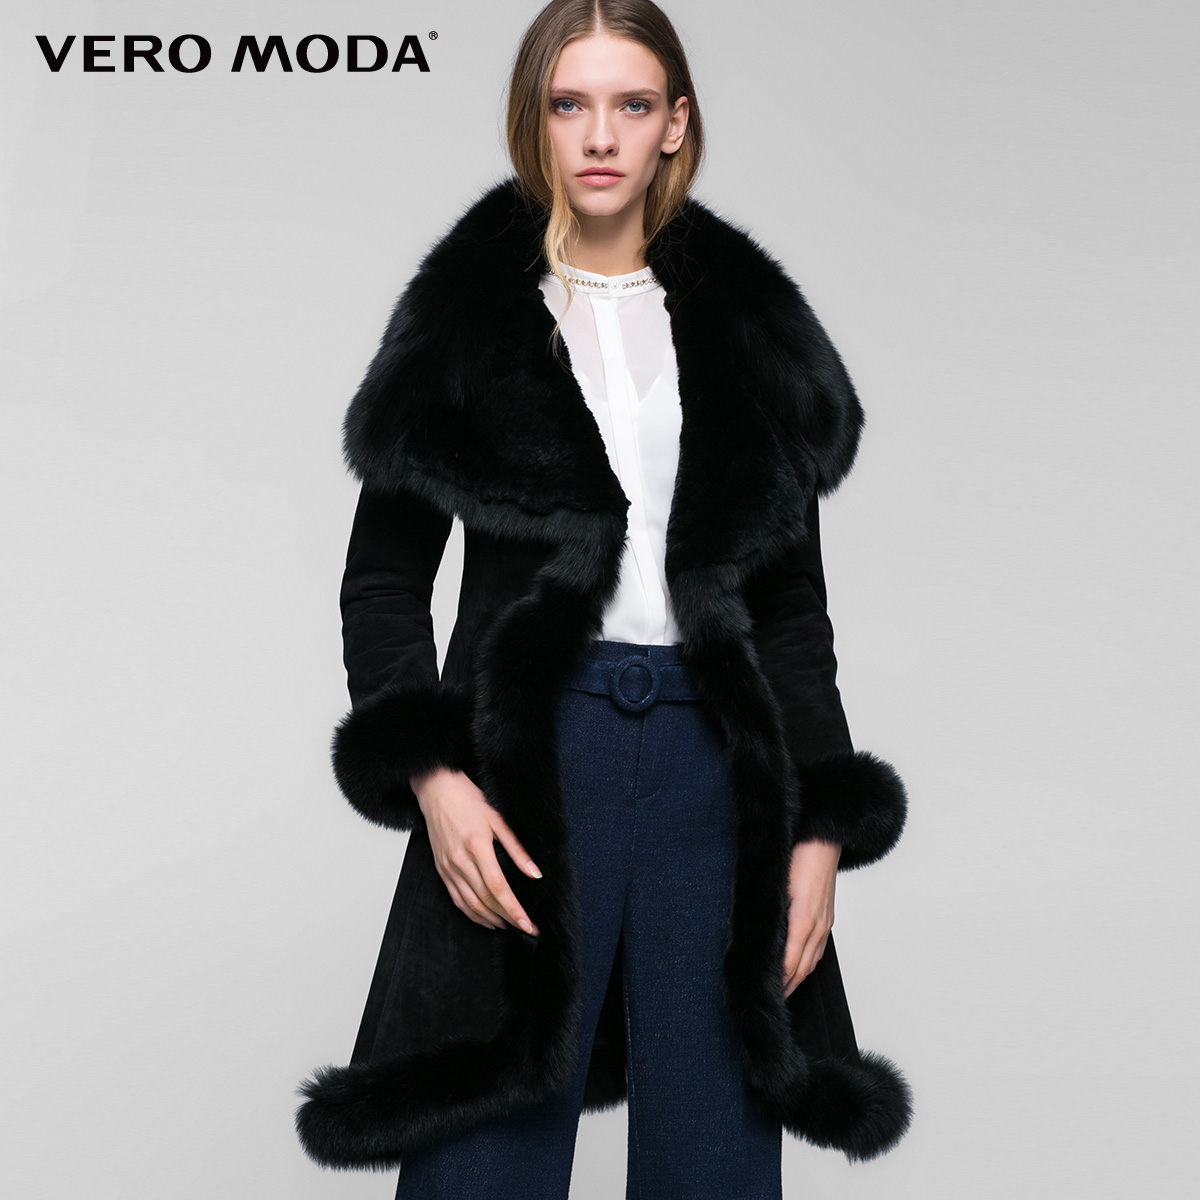 Leather jacket VERO MODA 316428525 VeroModa